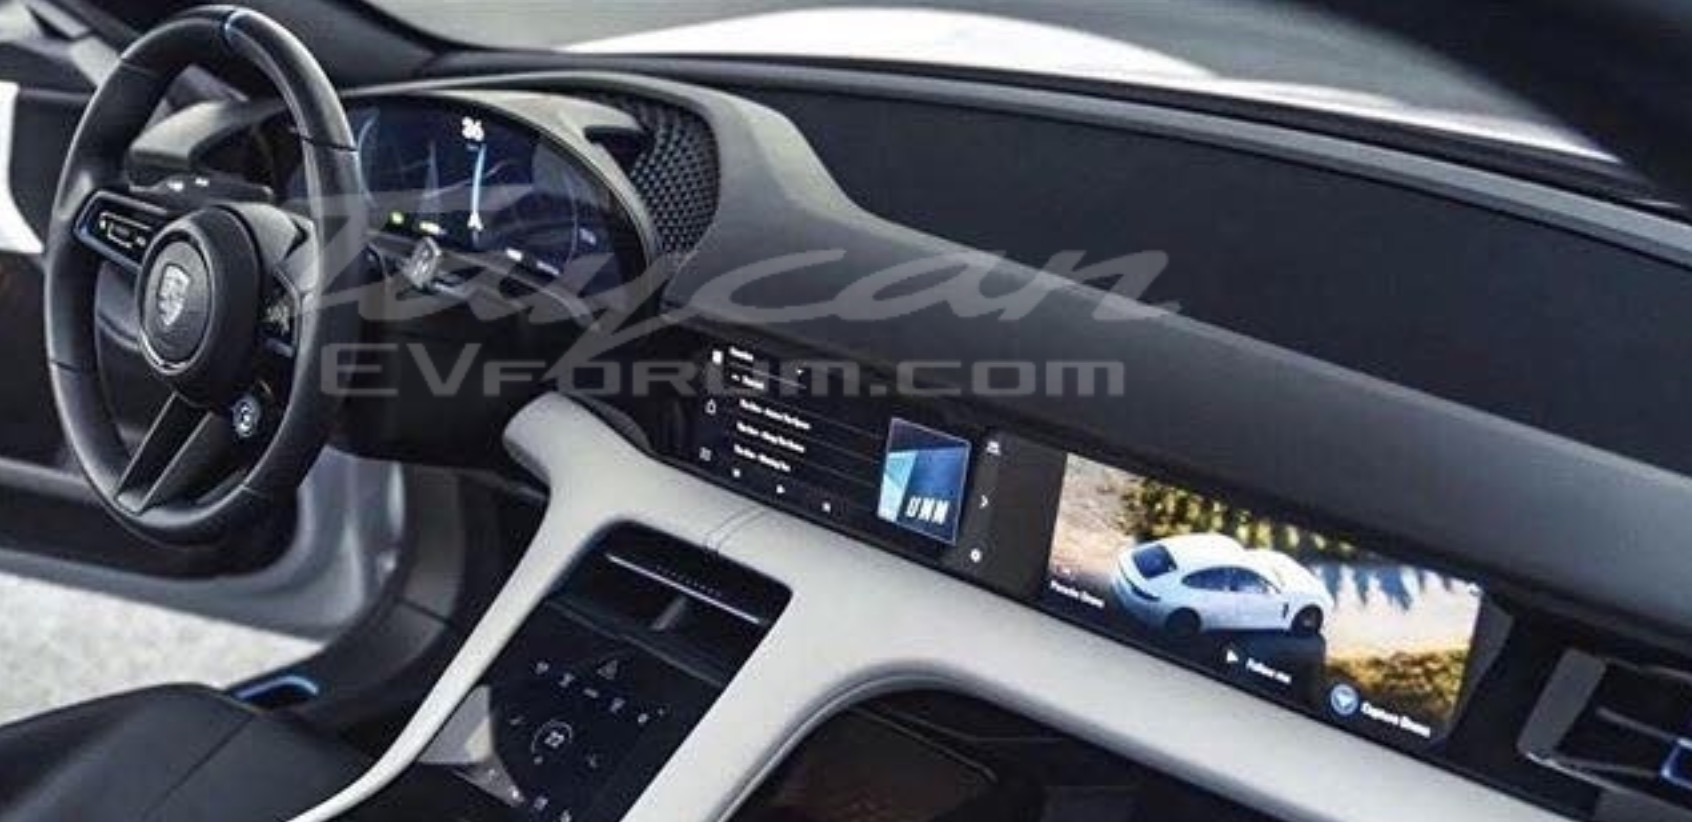 Porsche Taycan interior revealed in leaked images